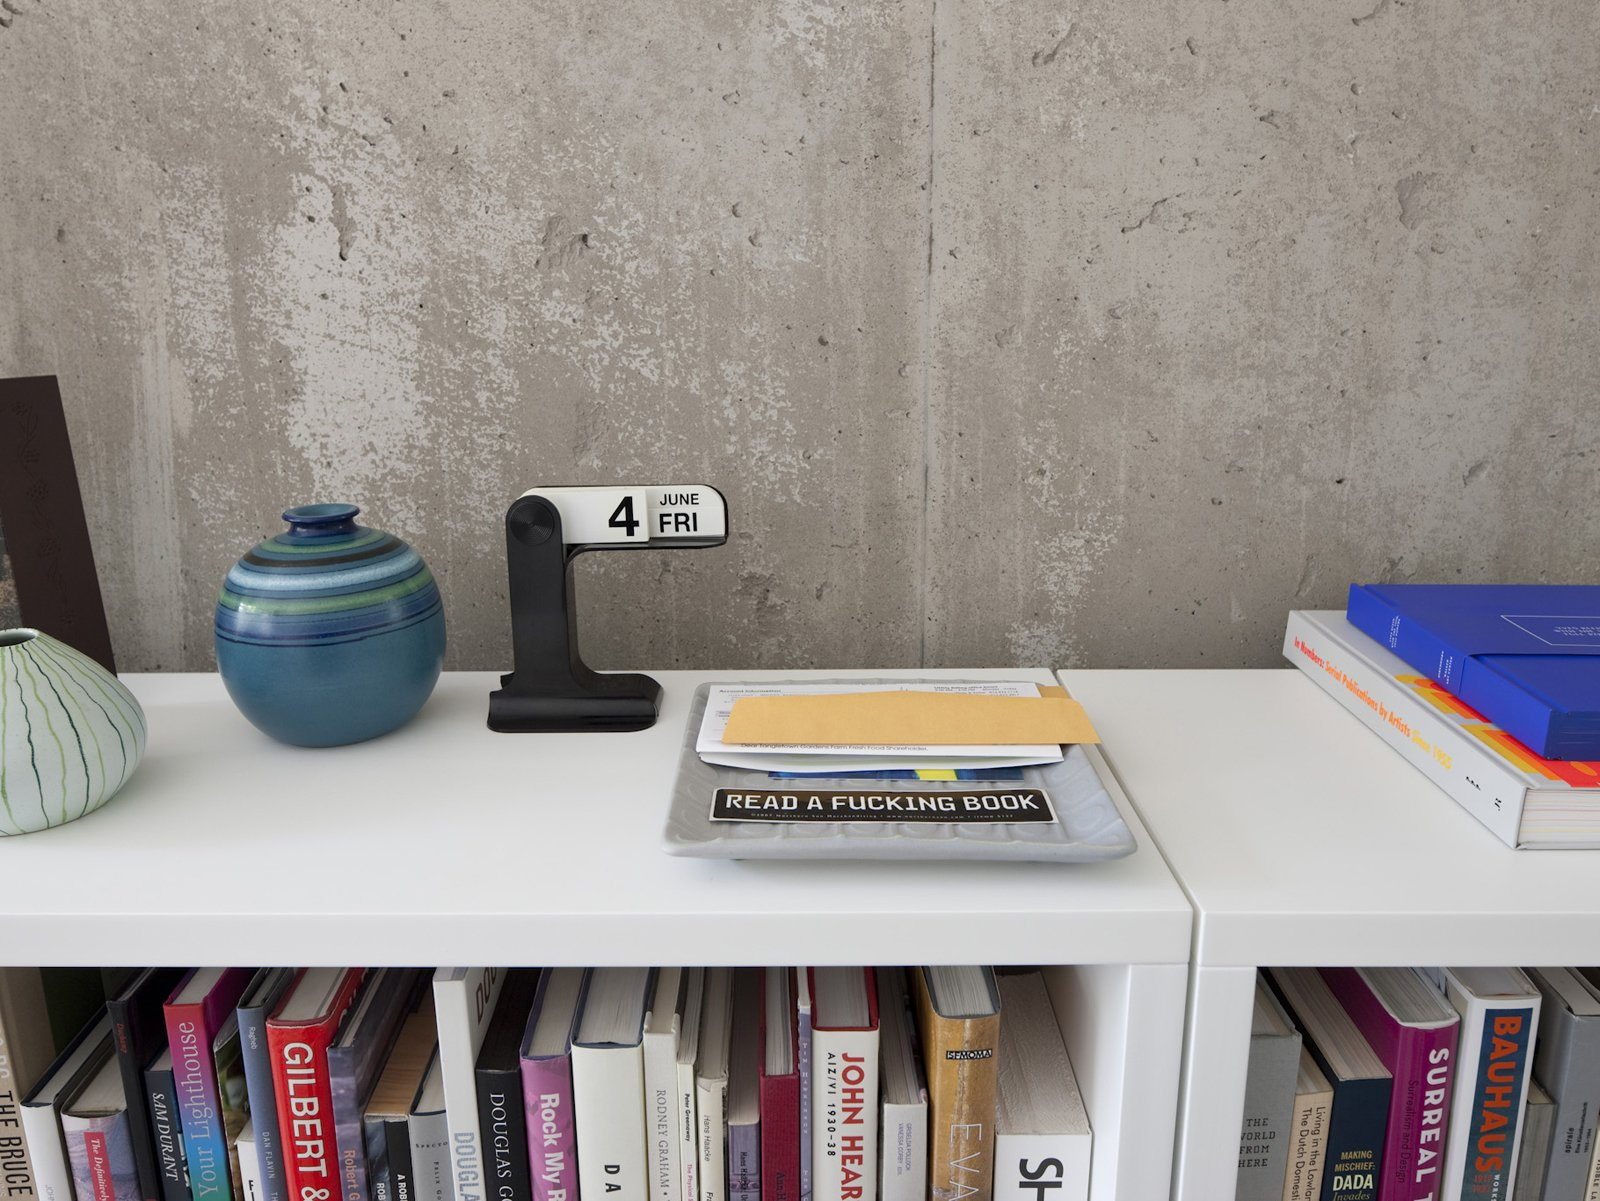 Design tomes, a salient message, mid-century ceramic. Modern Urban Retreat in South Minneapolis - Photo 17 of 29